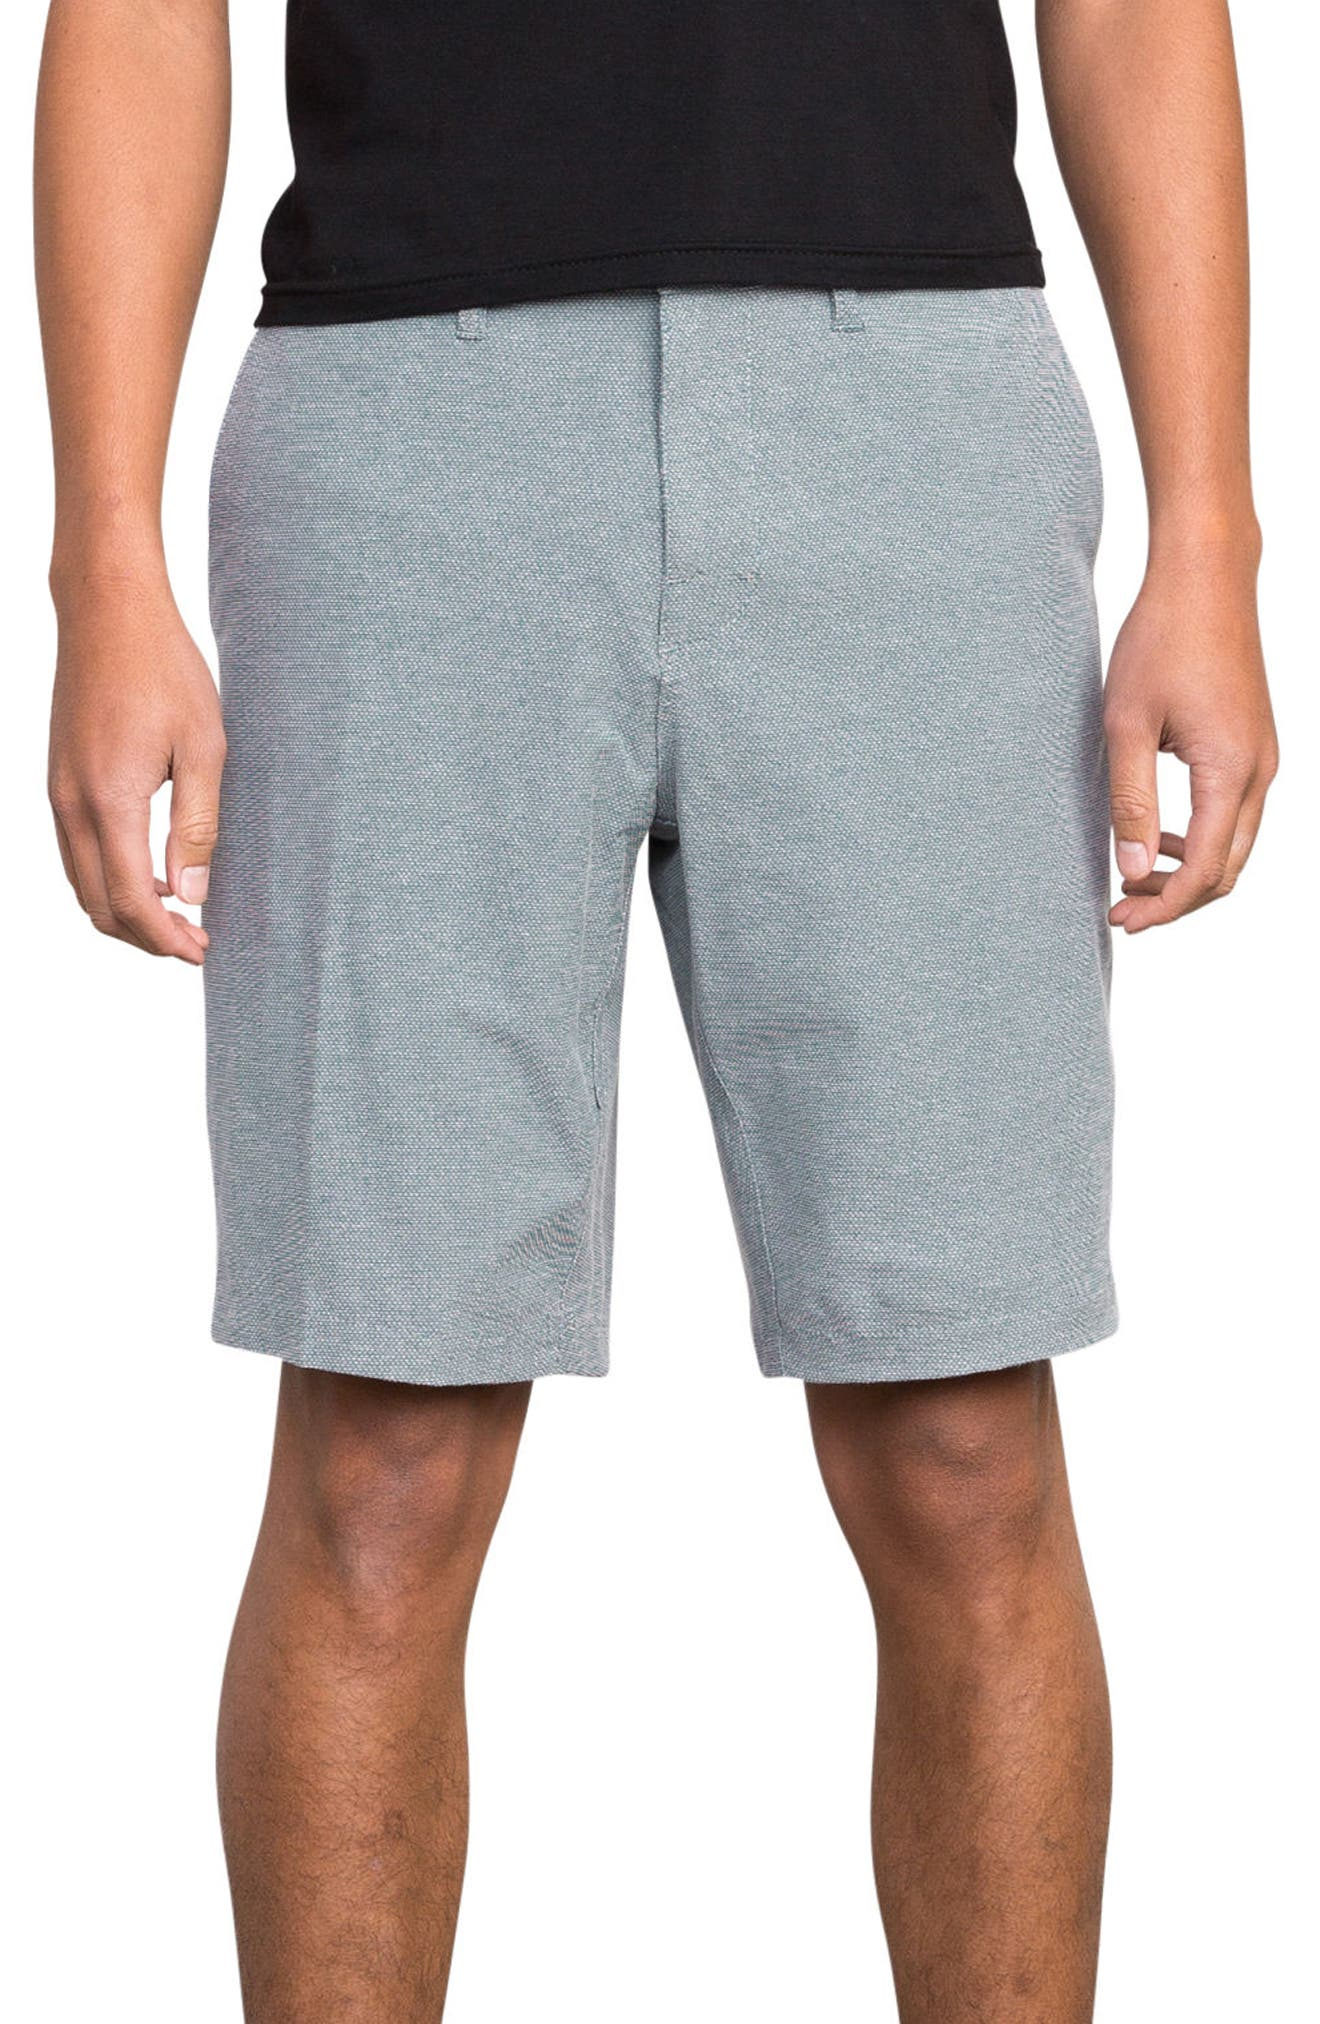 Holidaze Hybrid Shorts,                             Main thumbnail 1, color,                             Slate